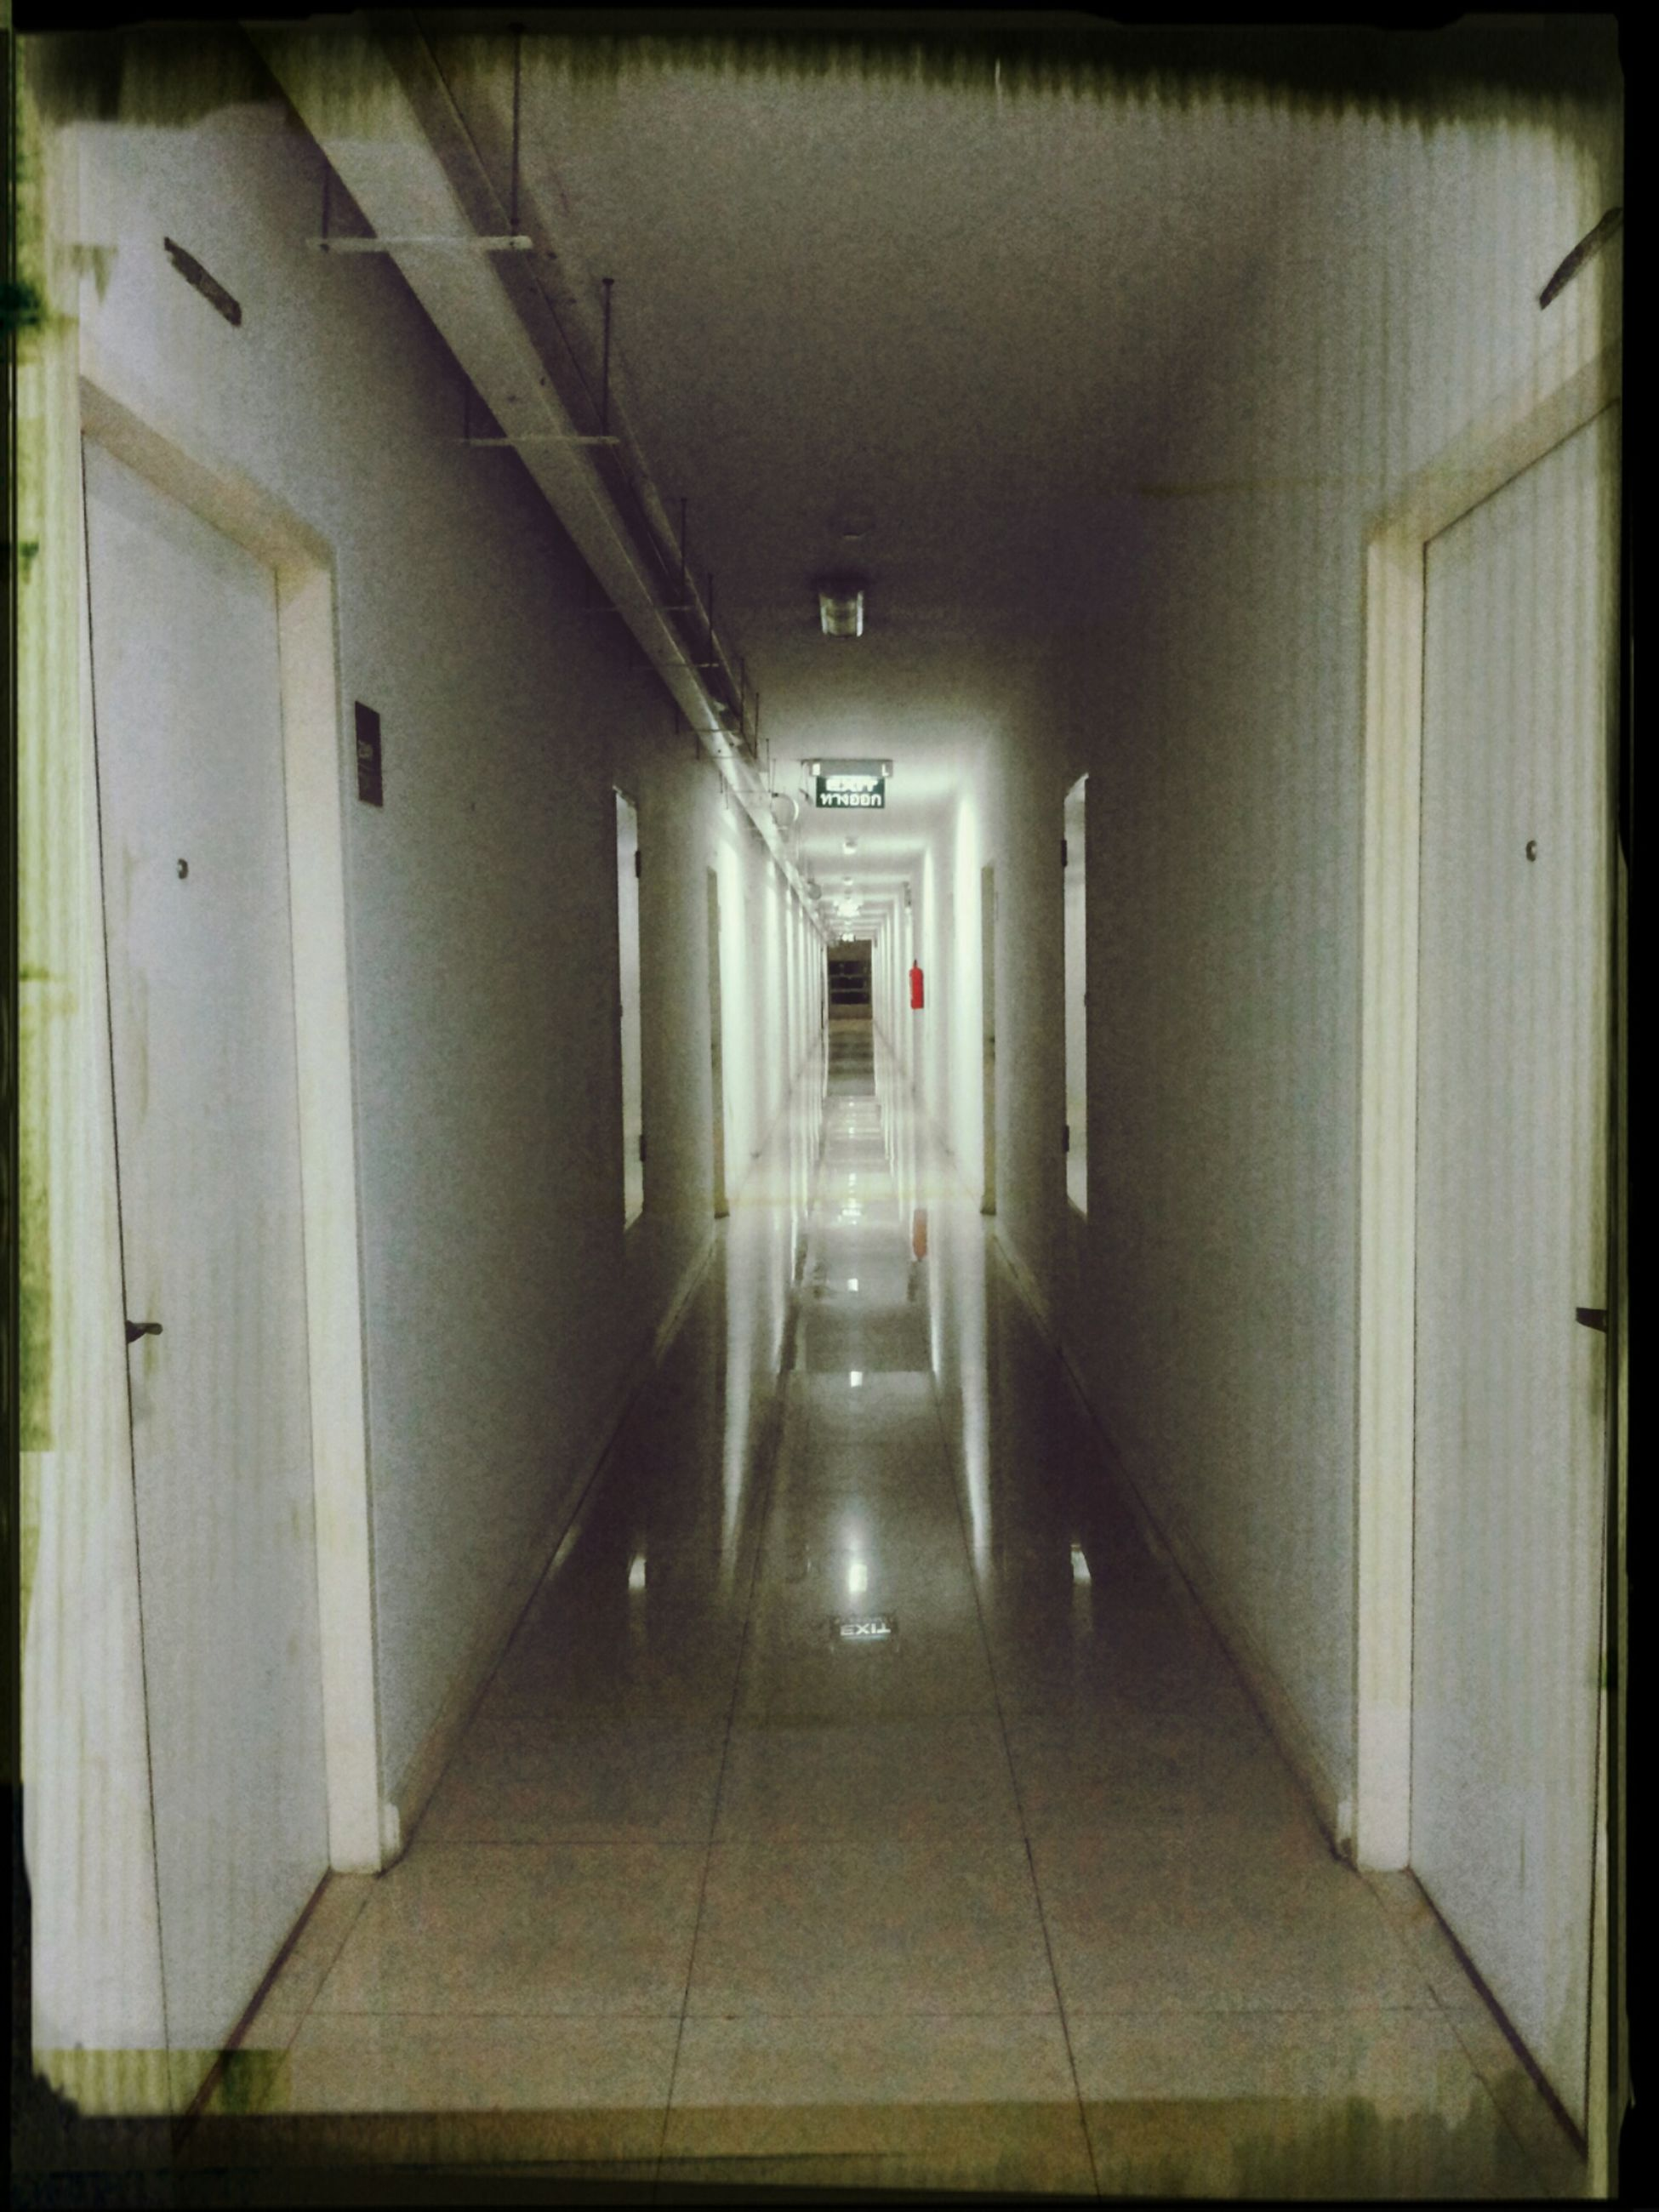 indoors, corridor, architecture, the way forward, built structure, empty, tiled floor, flooring, narrow, door, absence, transfer print, ceiling, diminishing perspective, wall - building feature, wall, auto post production filter, building, no people, illuminated